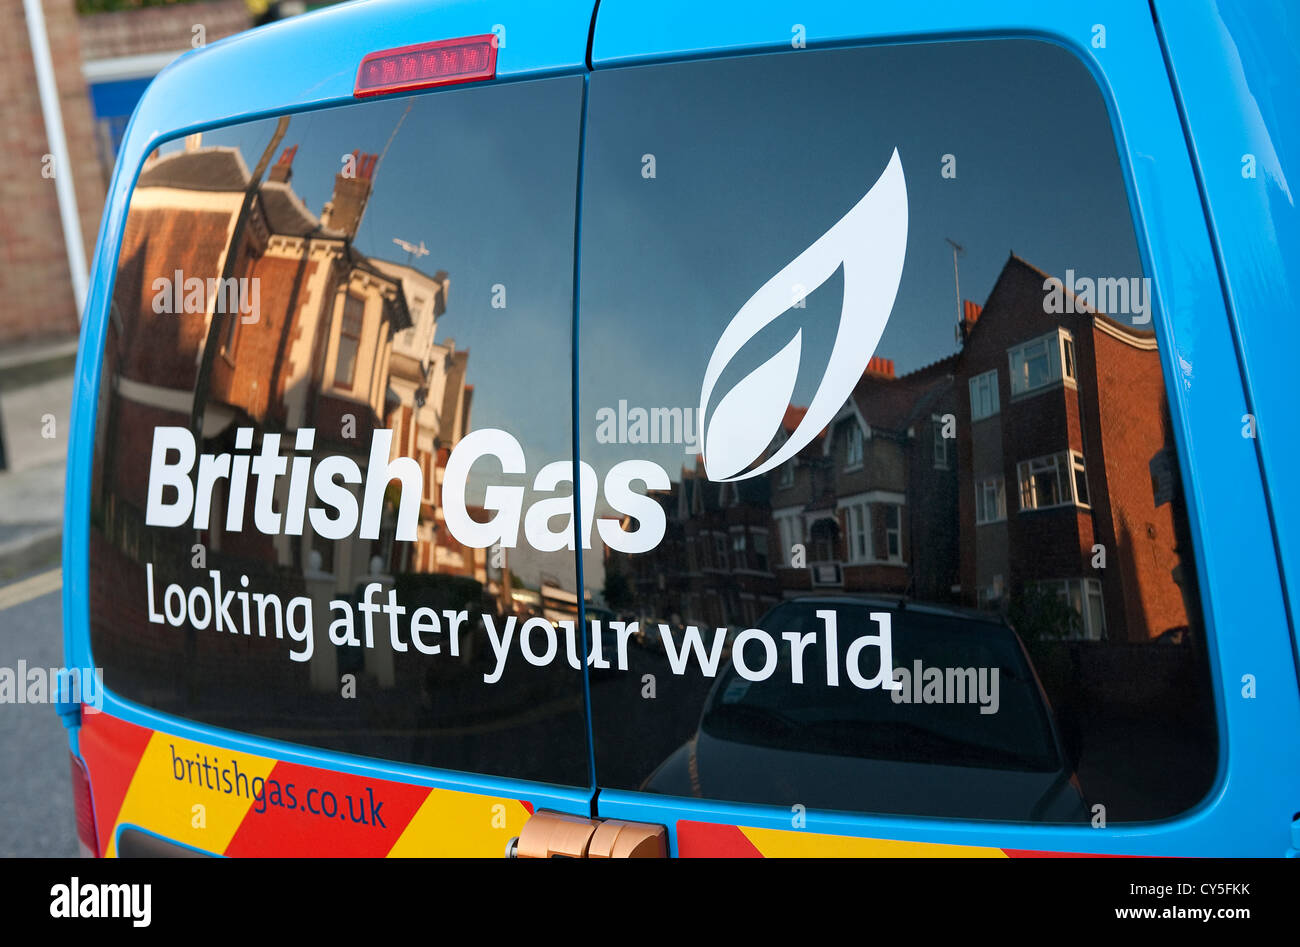 british gas service van parked on street, broadstairs, kent, england Stock Photo